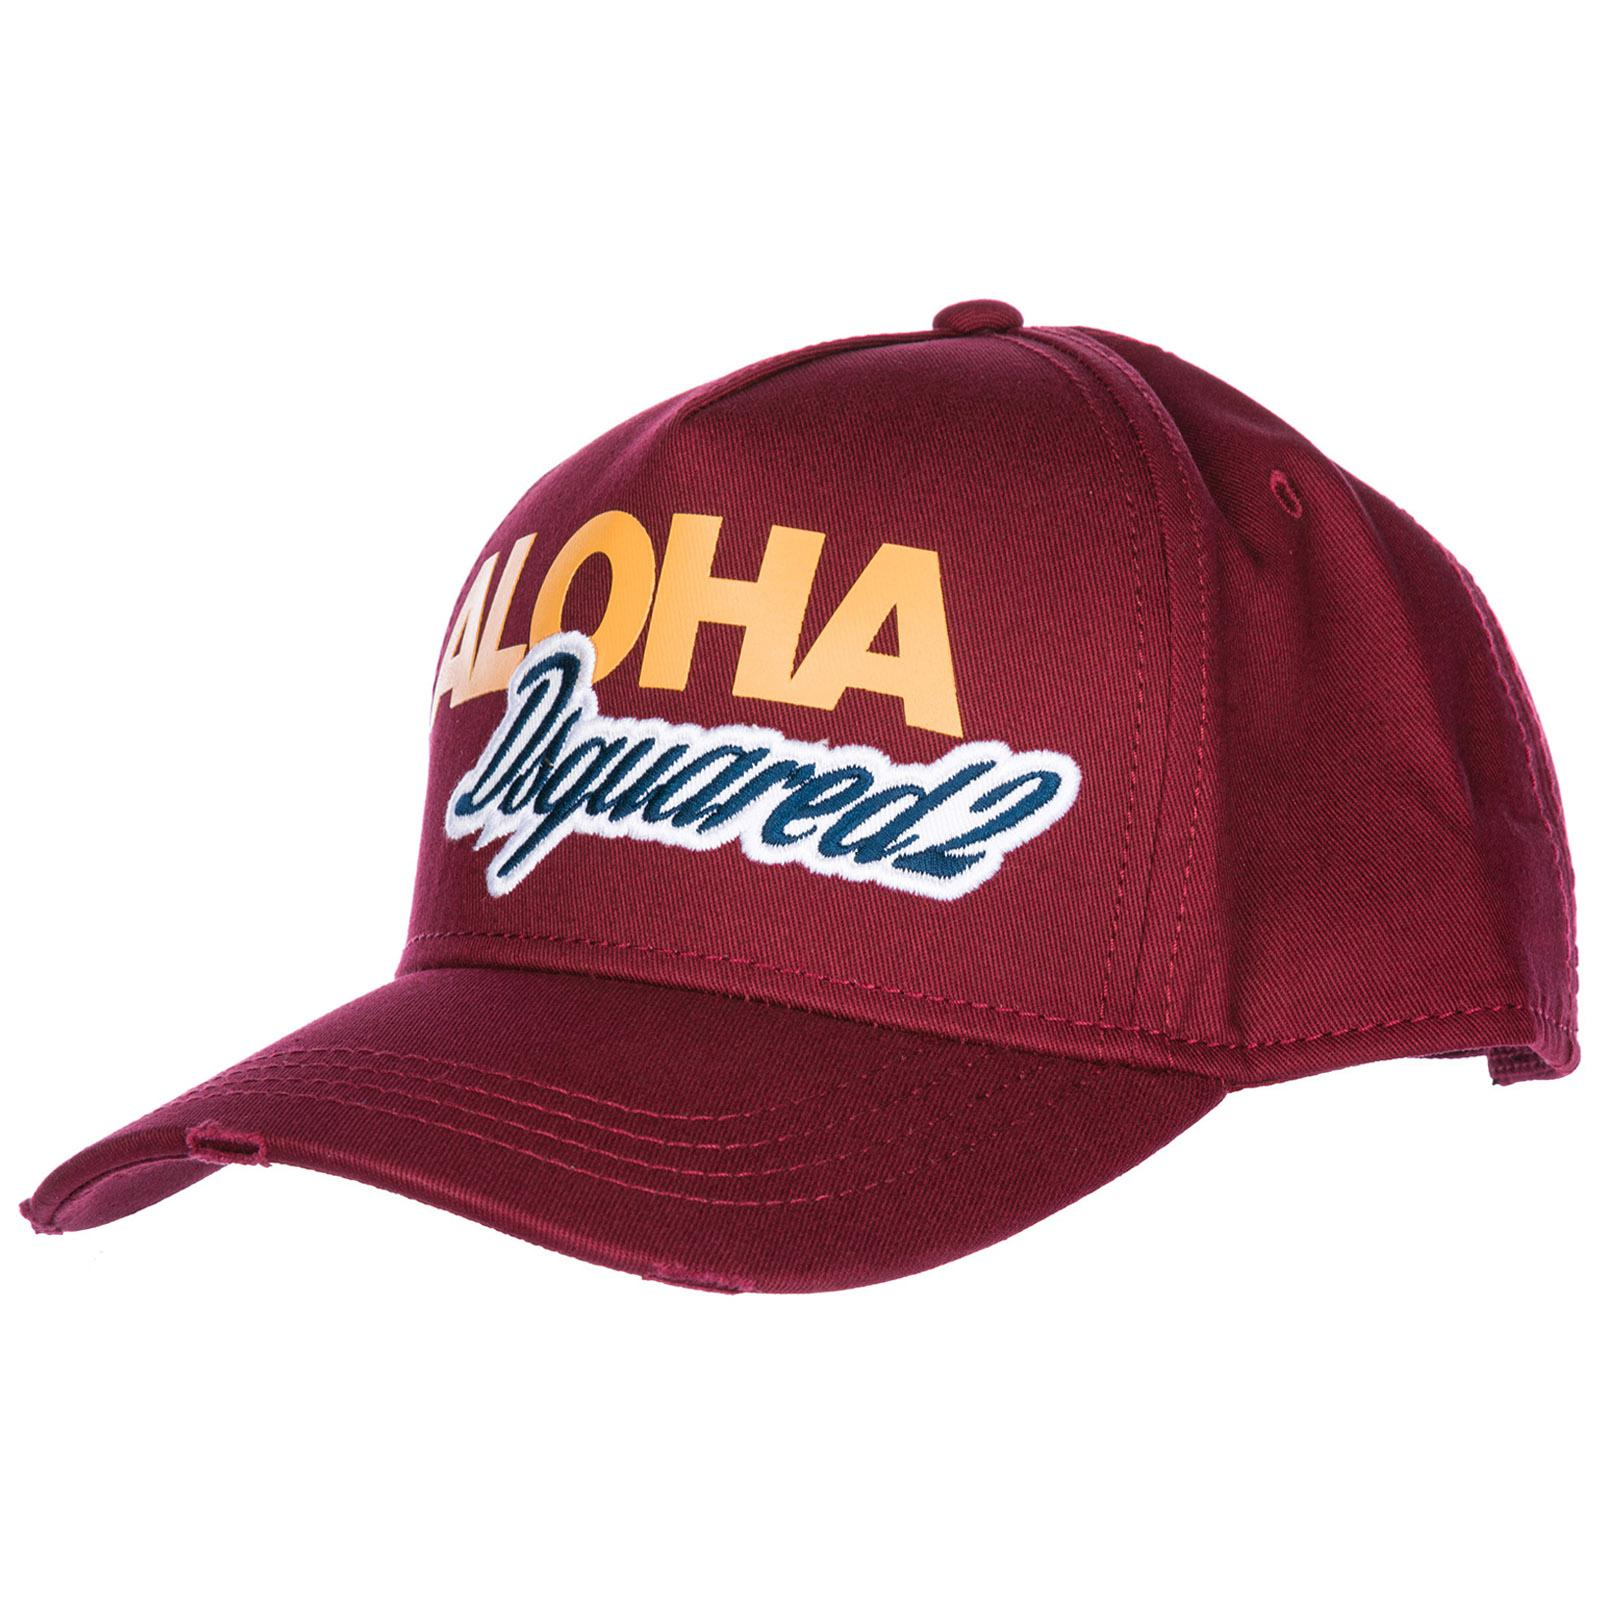 44c9d8a66bab0 DSquared² Adjustable Cotton Hat Baseball Cap Aloha Baseball in Red ...